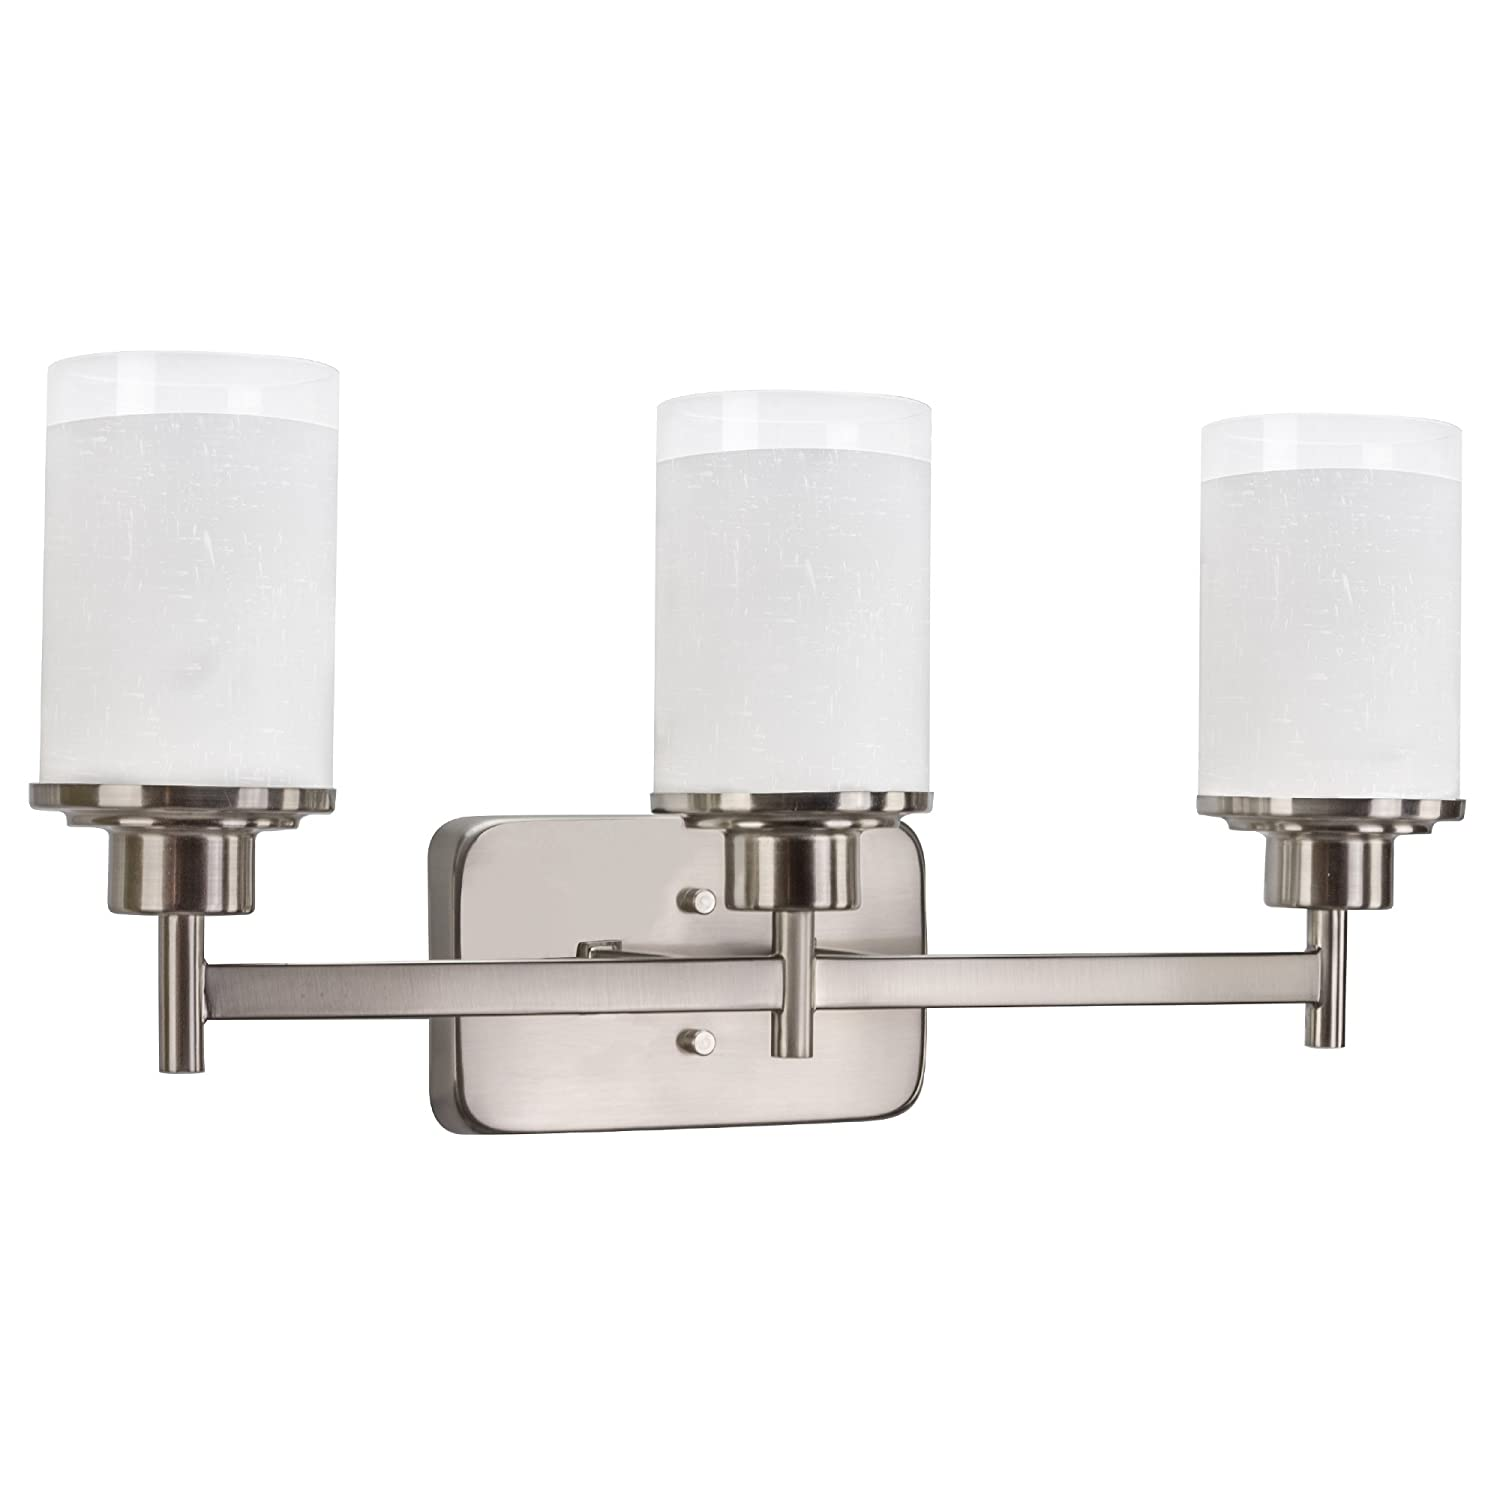 windsor 22 3 light modern vanity bathroom fixture brushed nickel finish w 689850747299 ebay. Black Bedroom Furniture Sets. Home Design Ideas